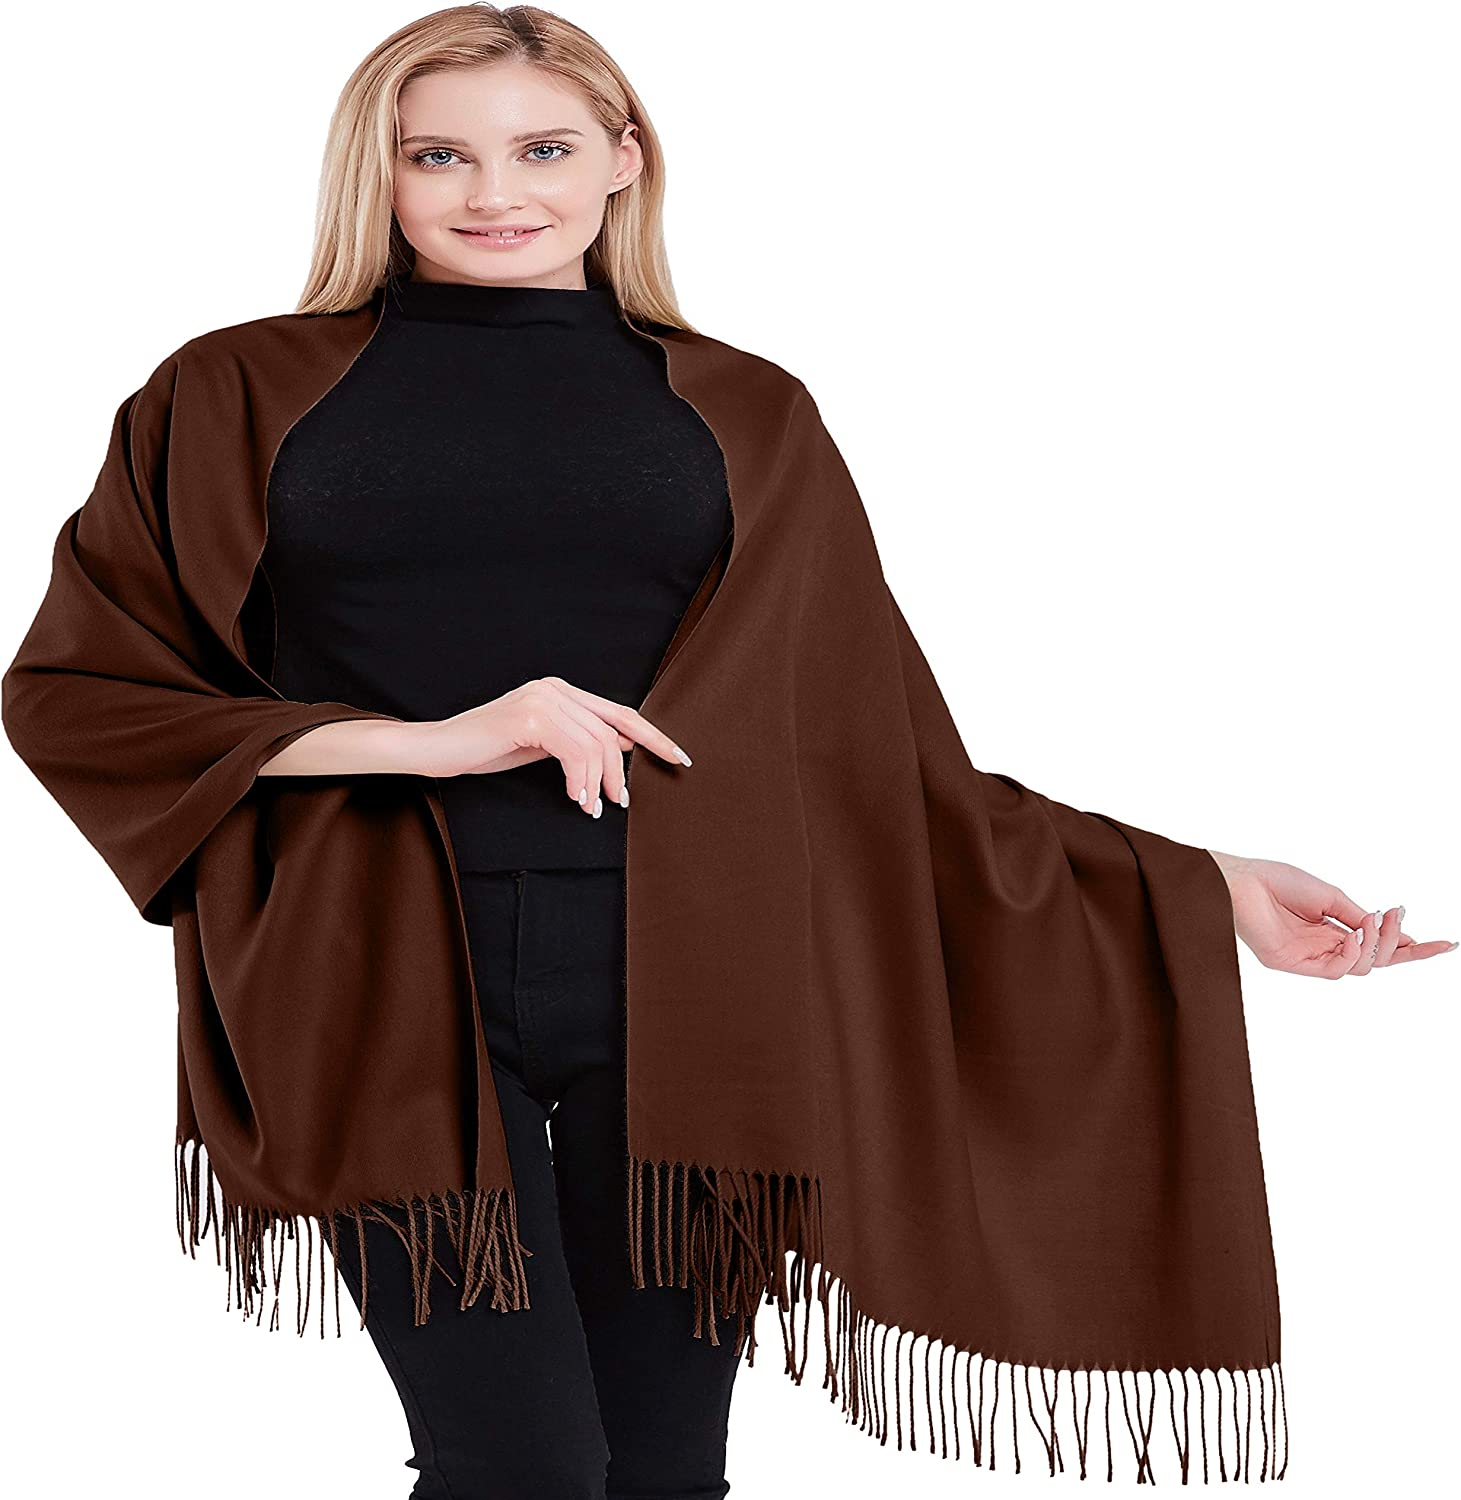 100% OFFer Cashmere Shawl Pashmina Overseas parallel import regular item Scarf Face Head Cov Wrap Stole